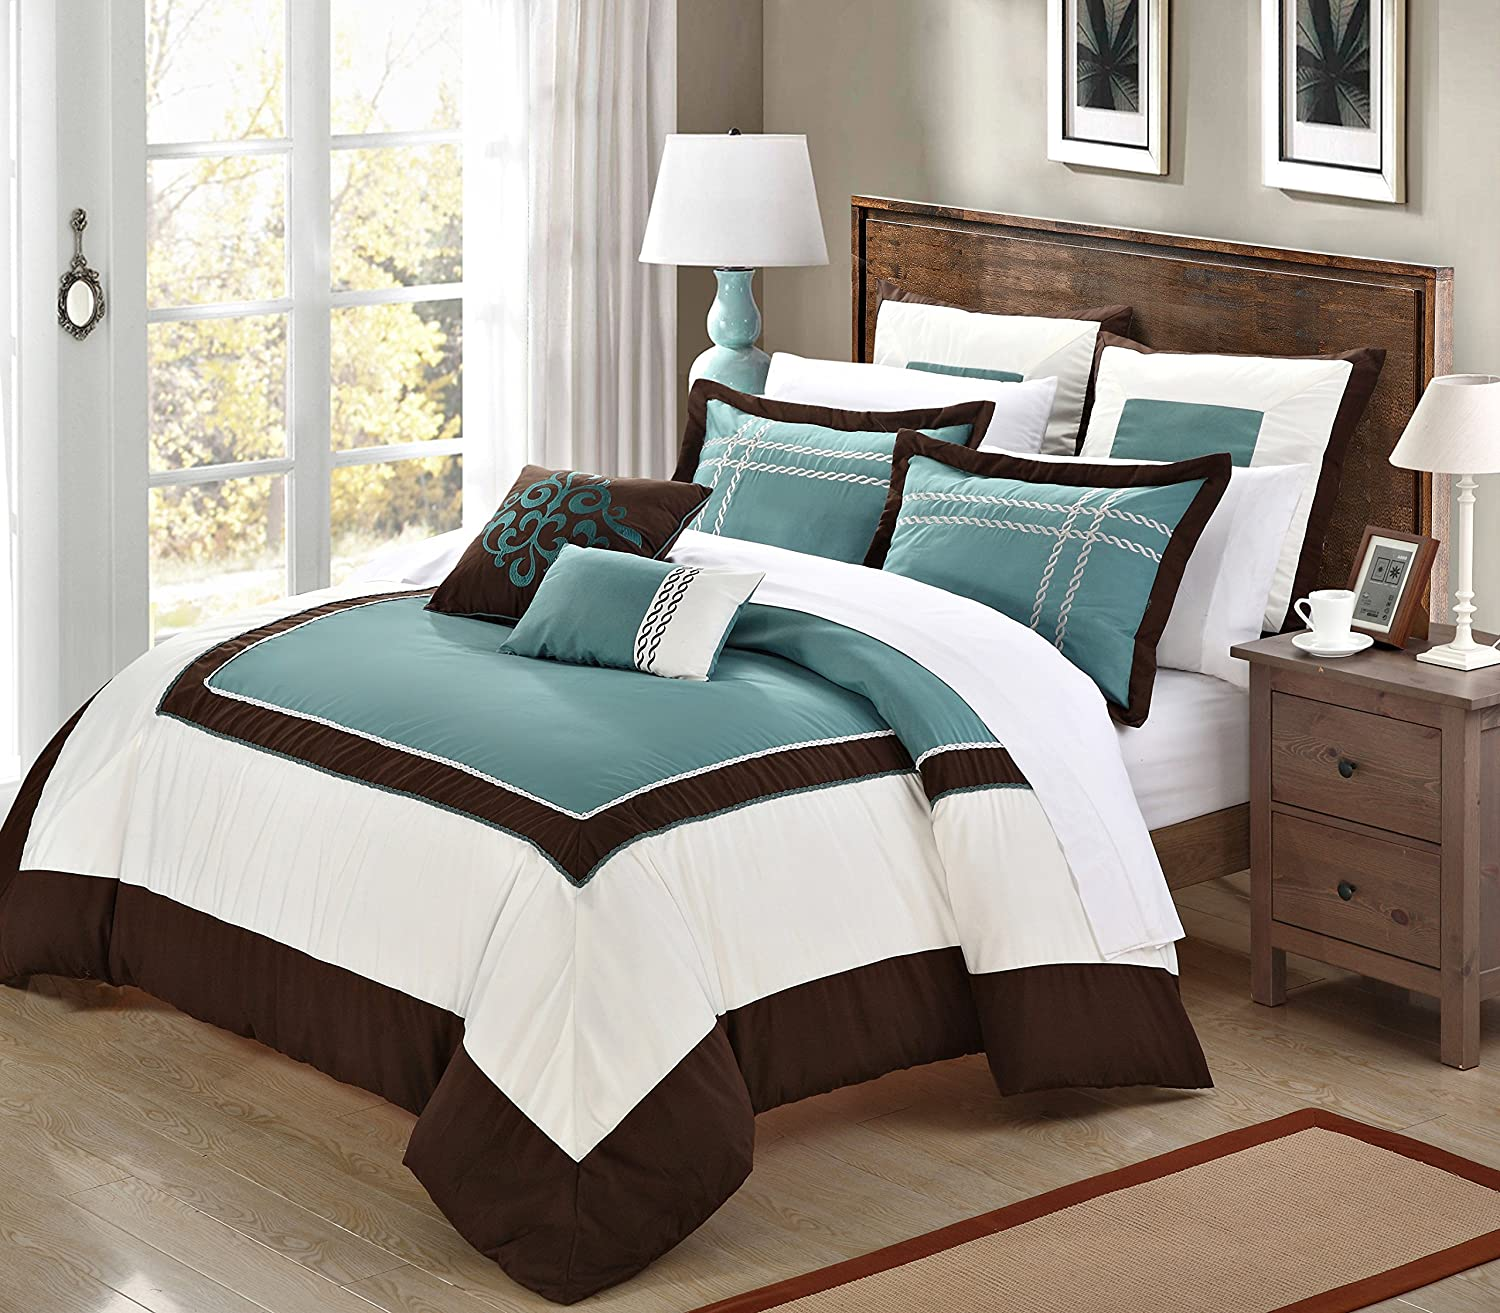 Turquoise Brown and White Bedding